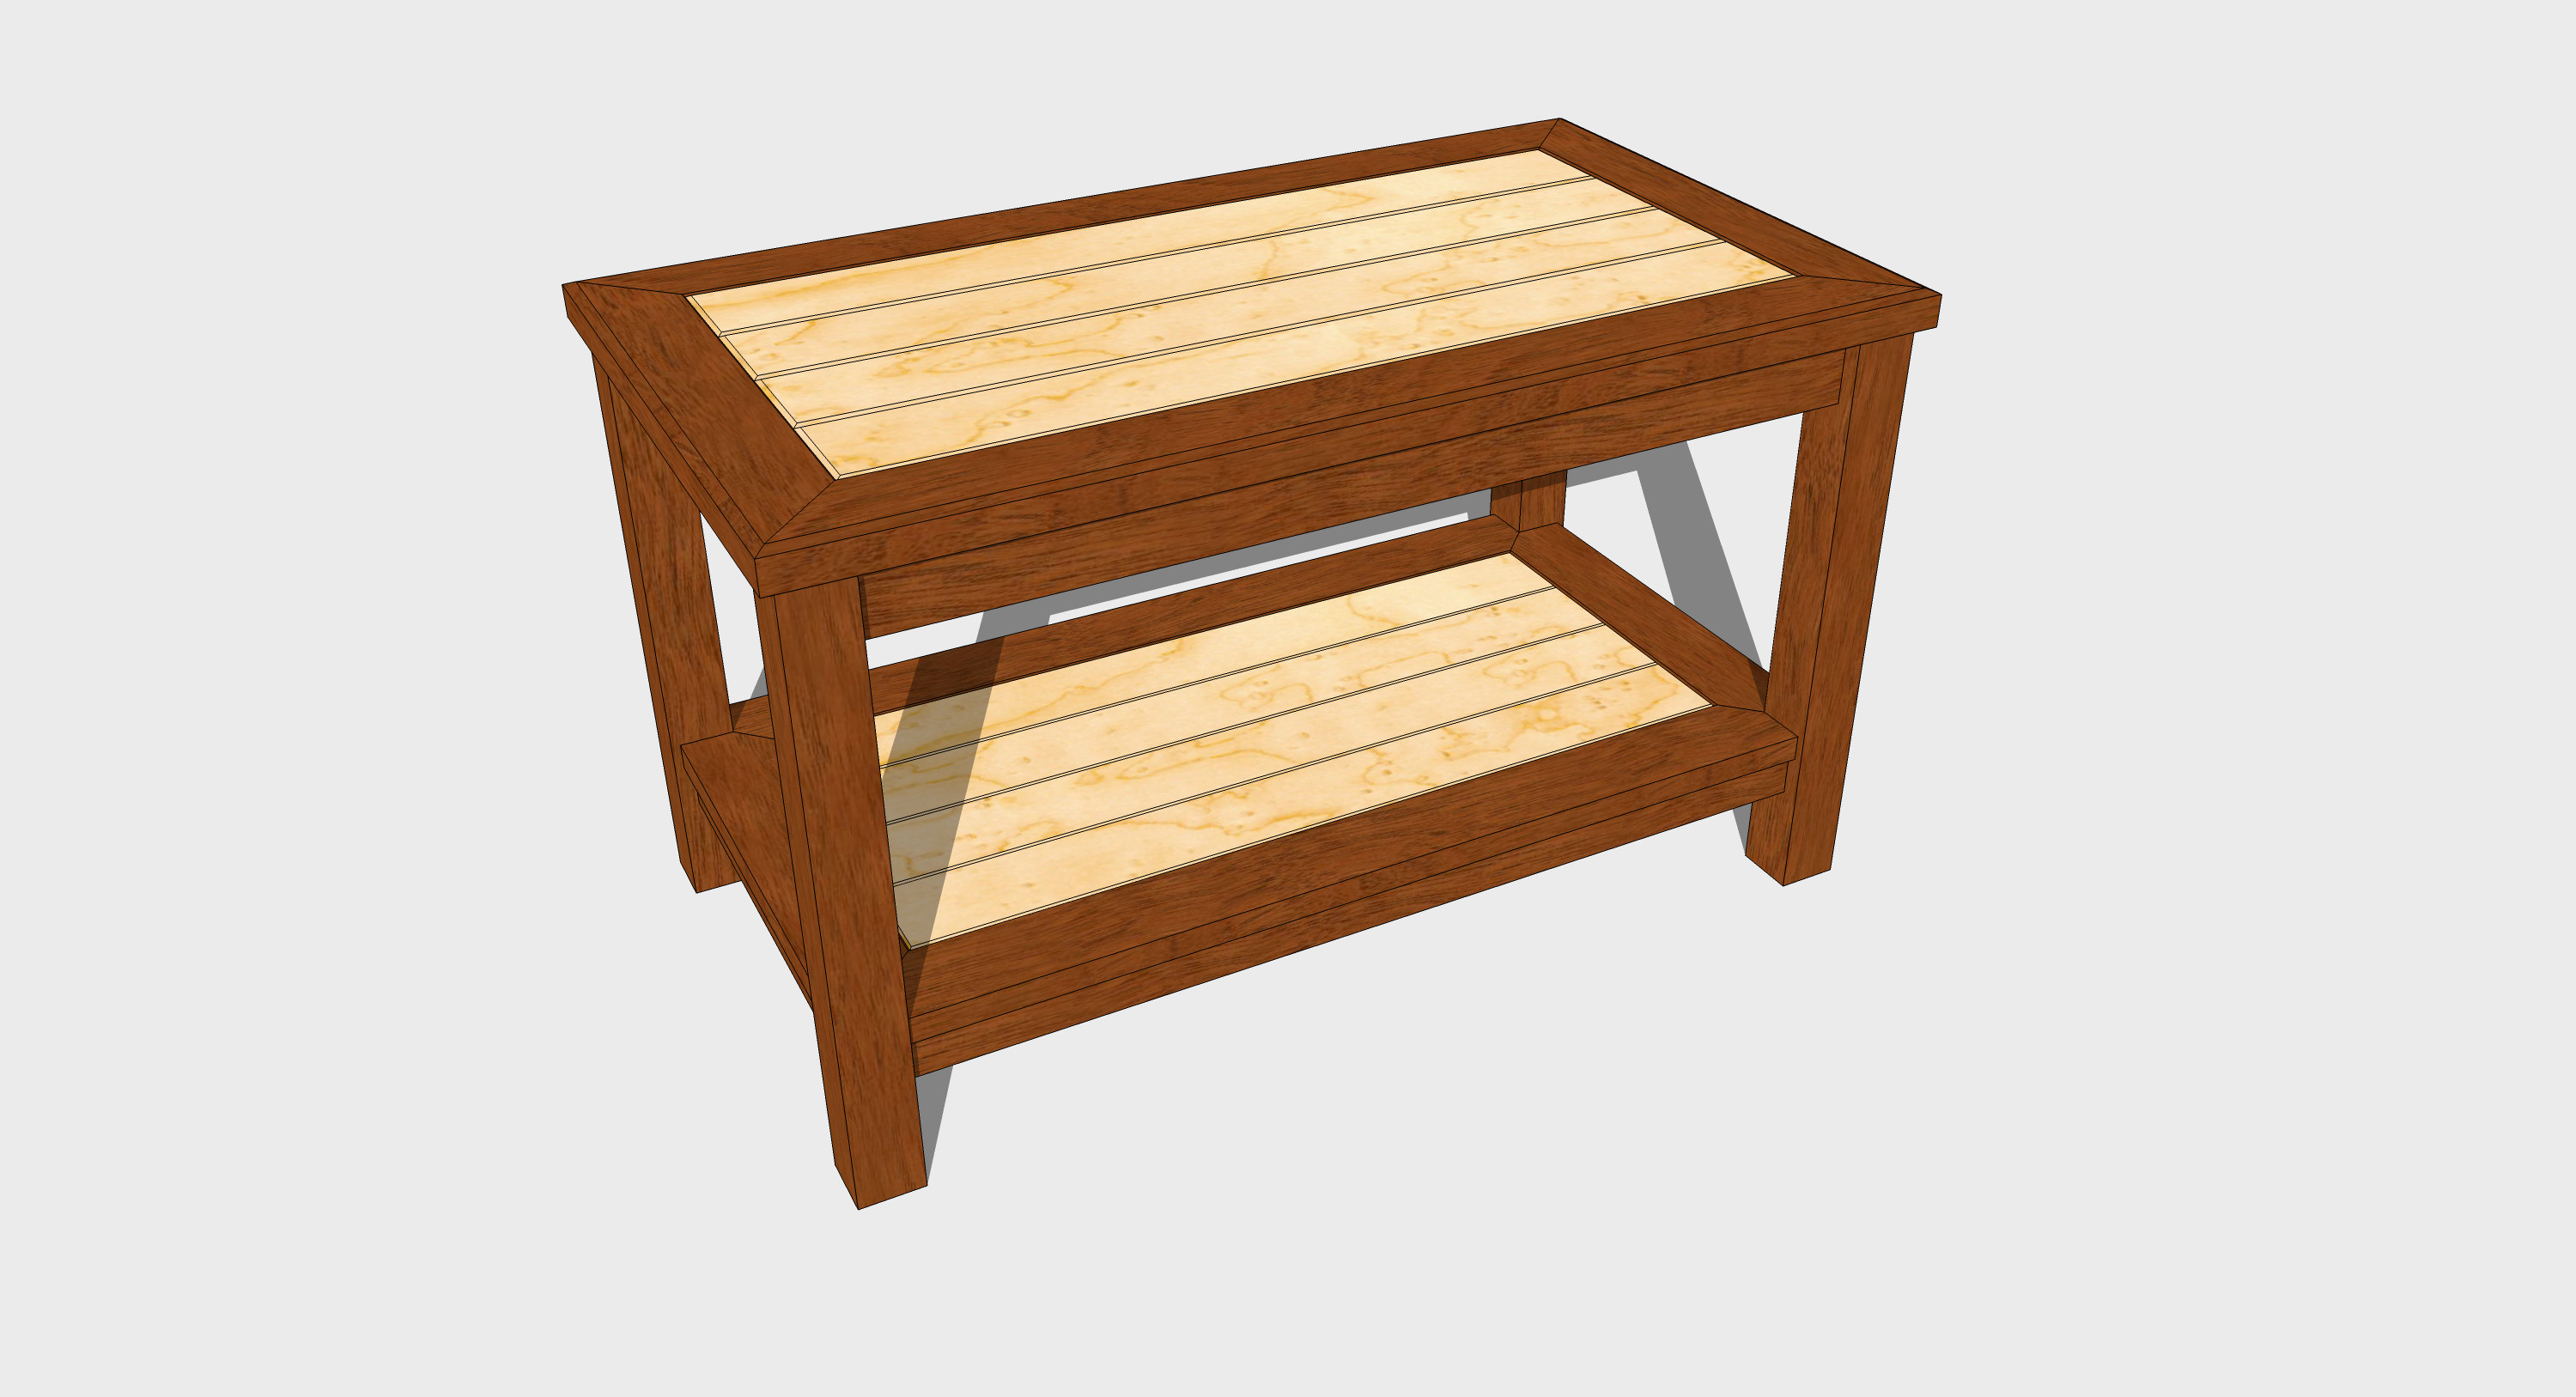 Best ideas about Coffee Table Plans . Save or Pin Free Coffee Table Woodworking Plan Now.